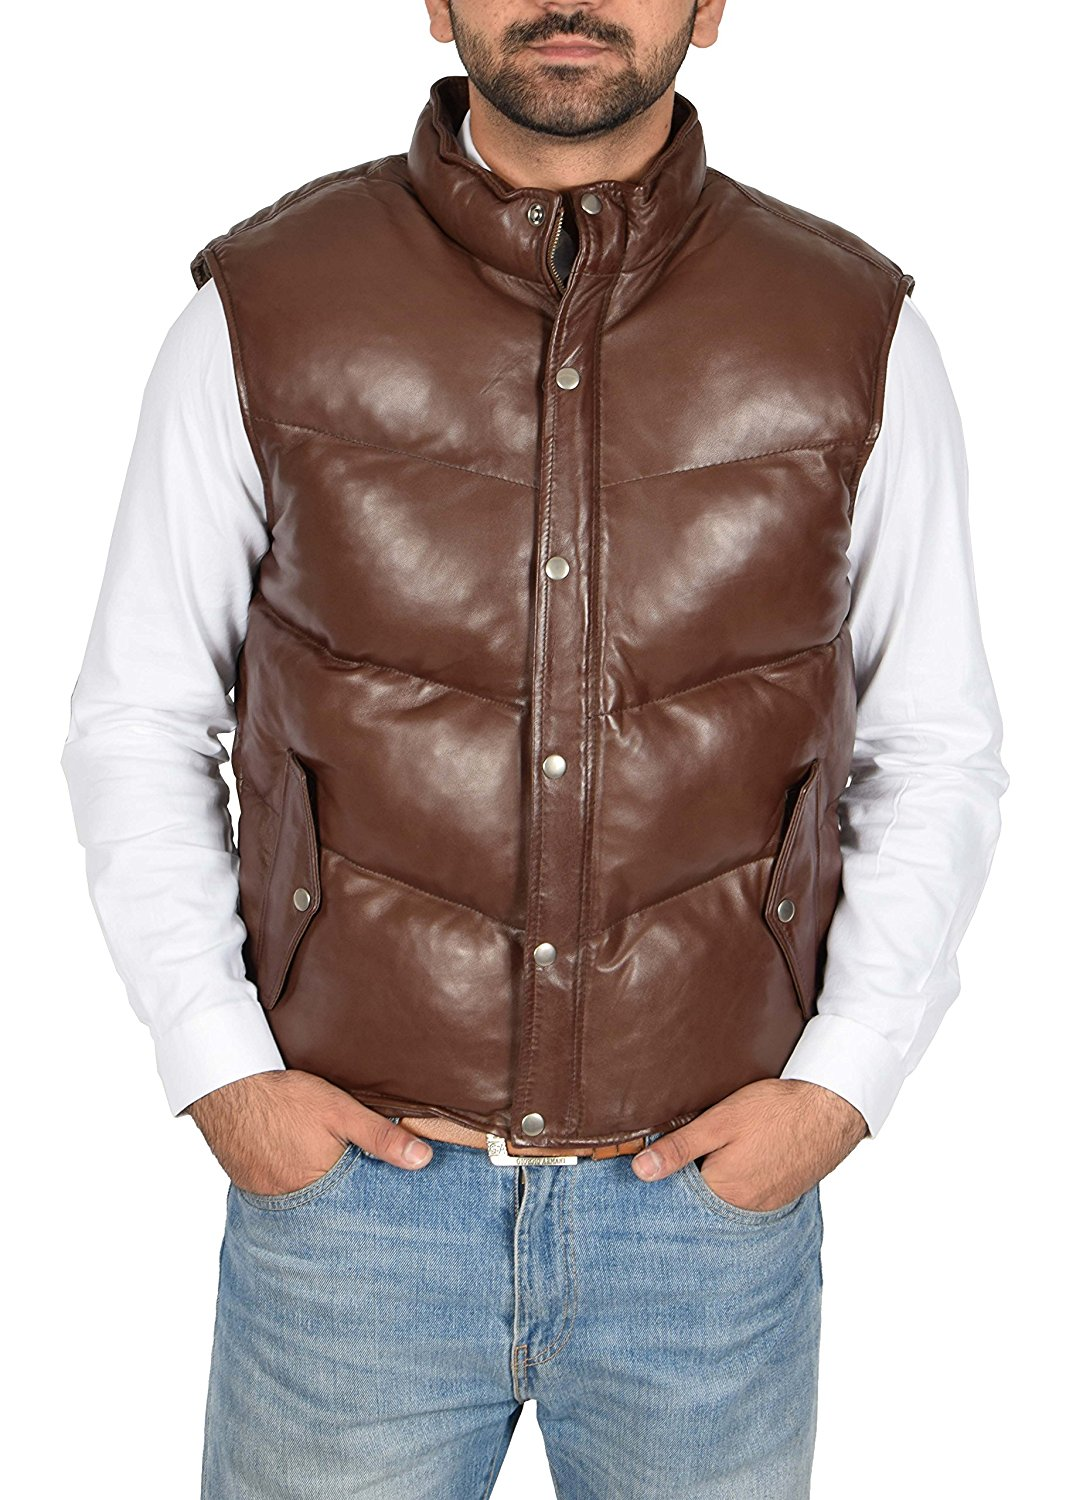 cheap gilet body warmer mens find gilet body warmer mens deals on rh guide alibaba com